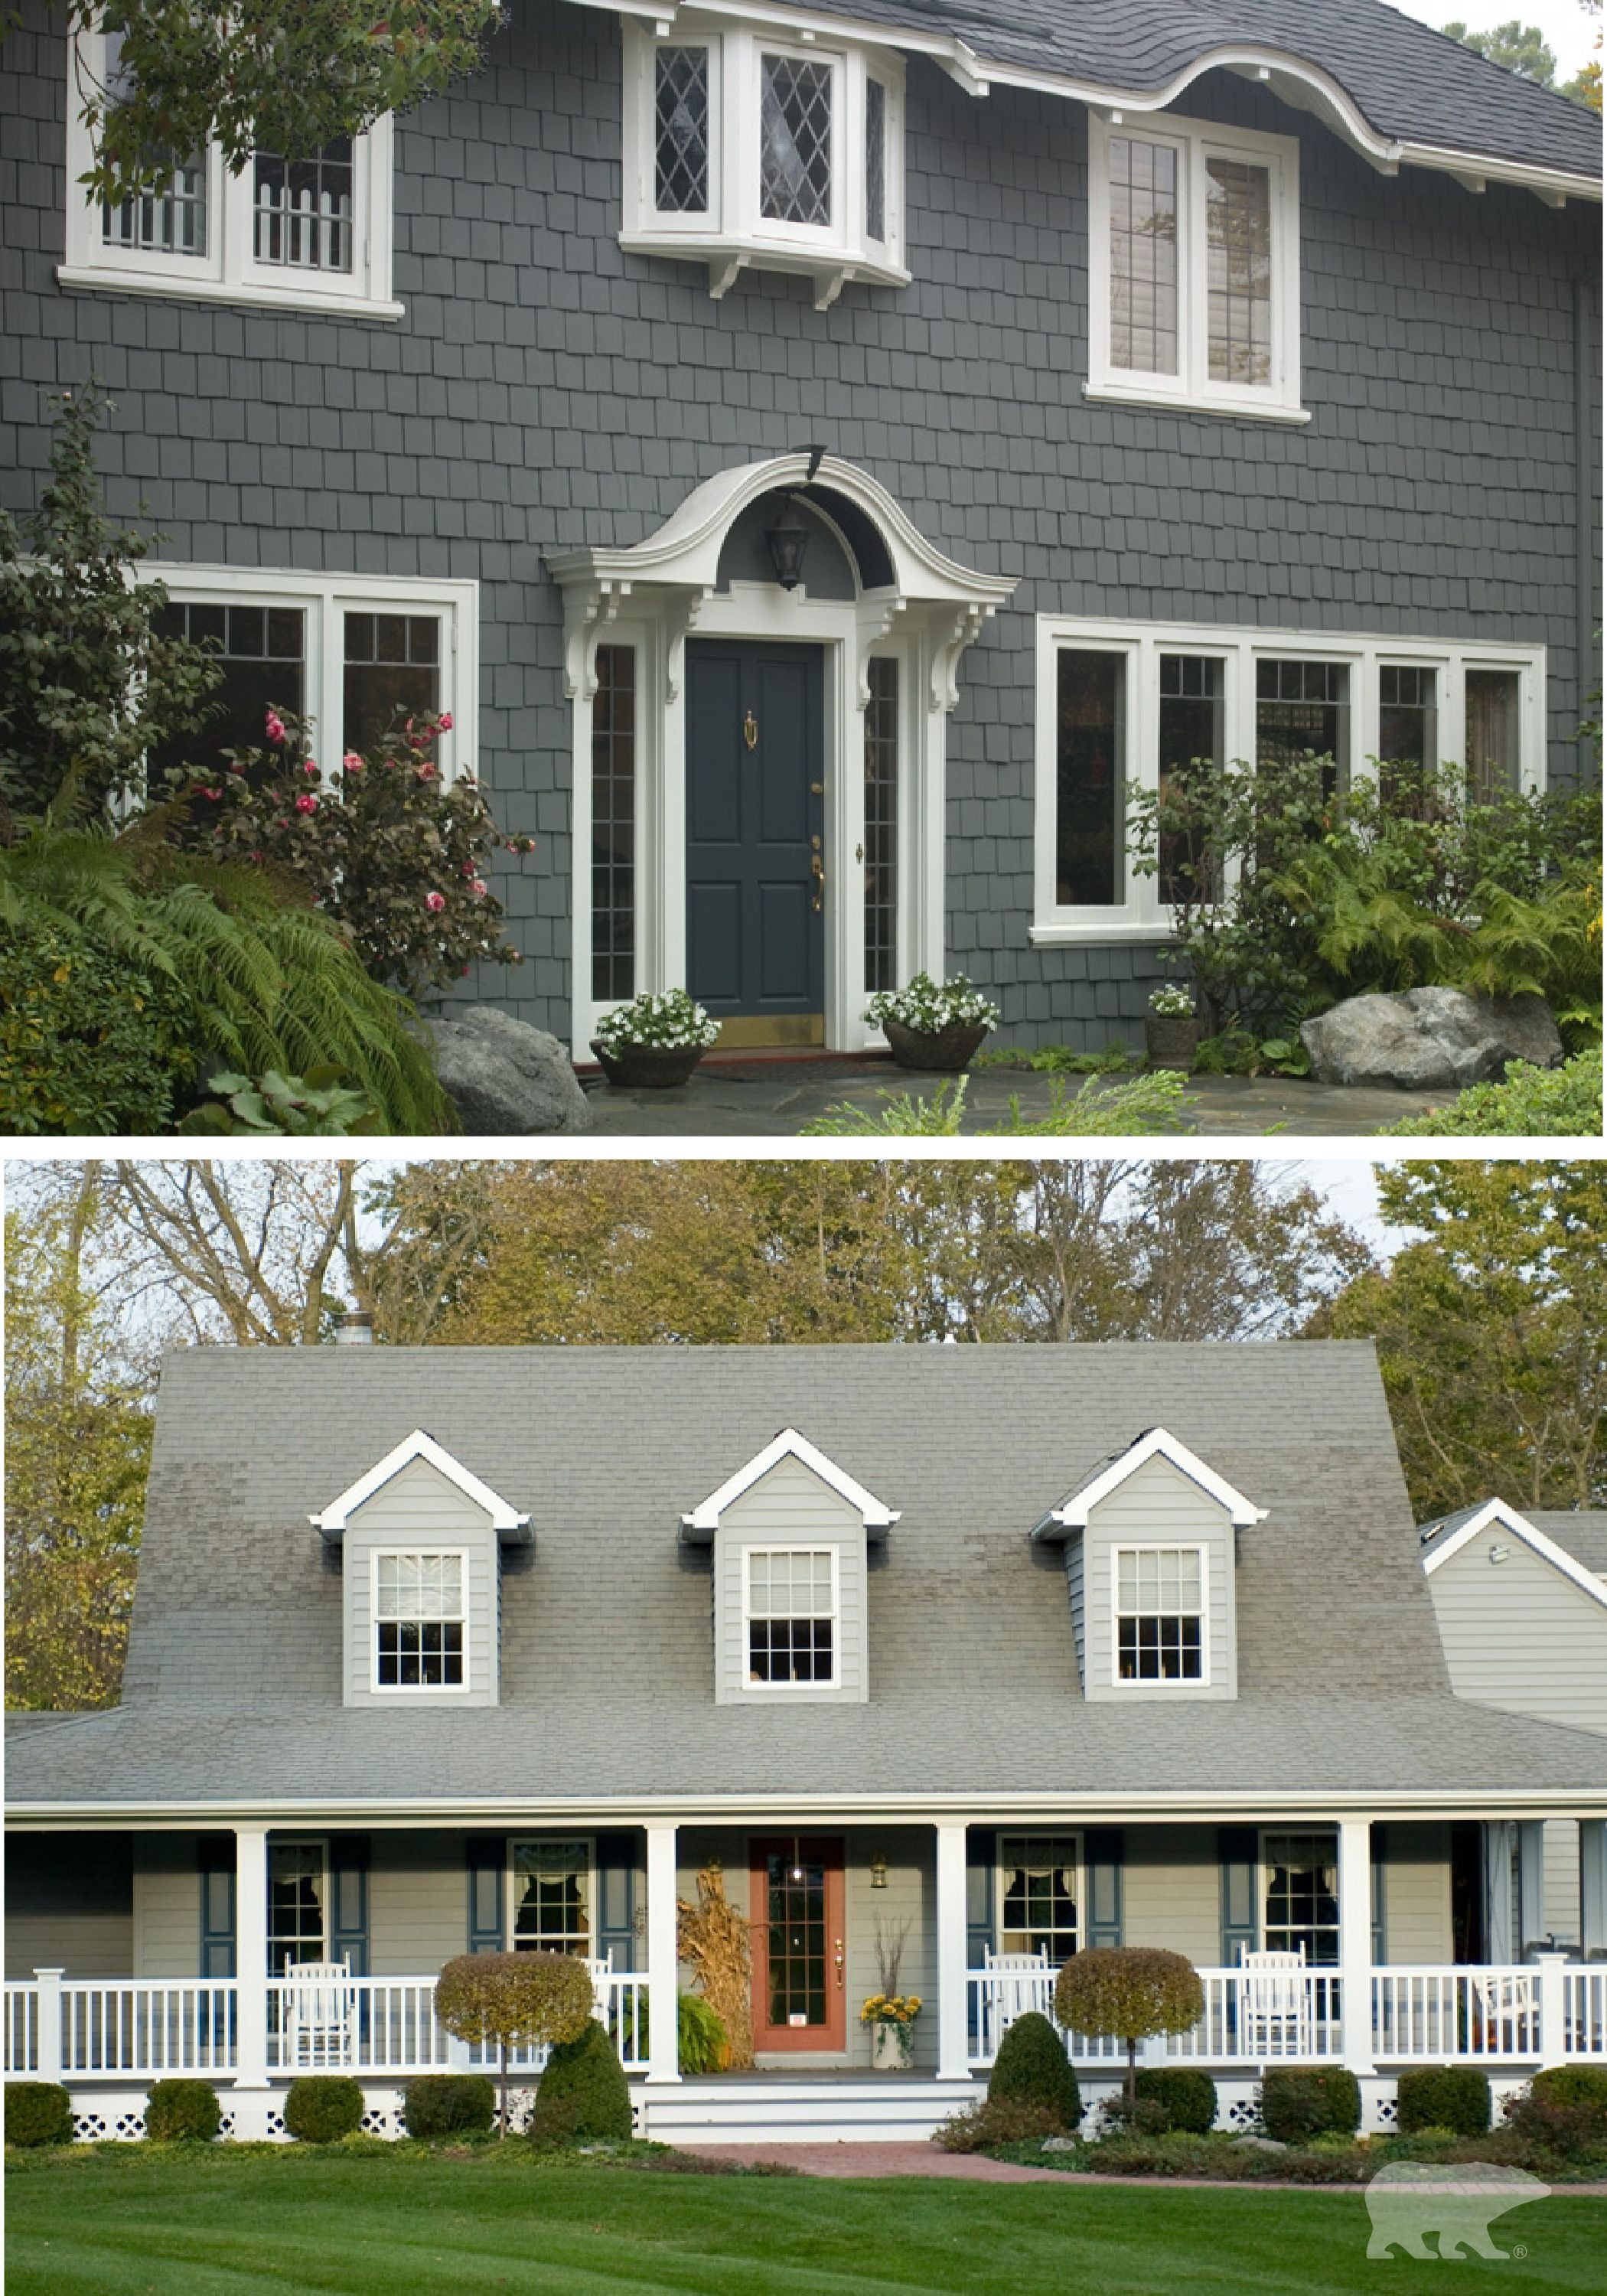 Best ideas about Behr Exterior Paint Colors . Save or Pin Wondering what color scheme to go with when updating the Now.